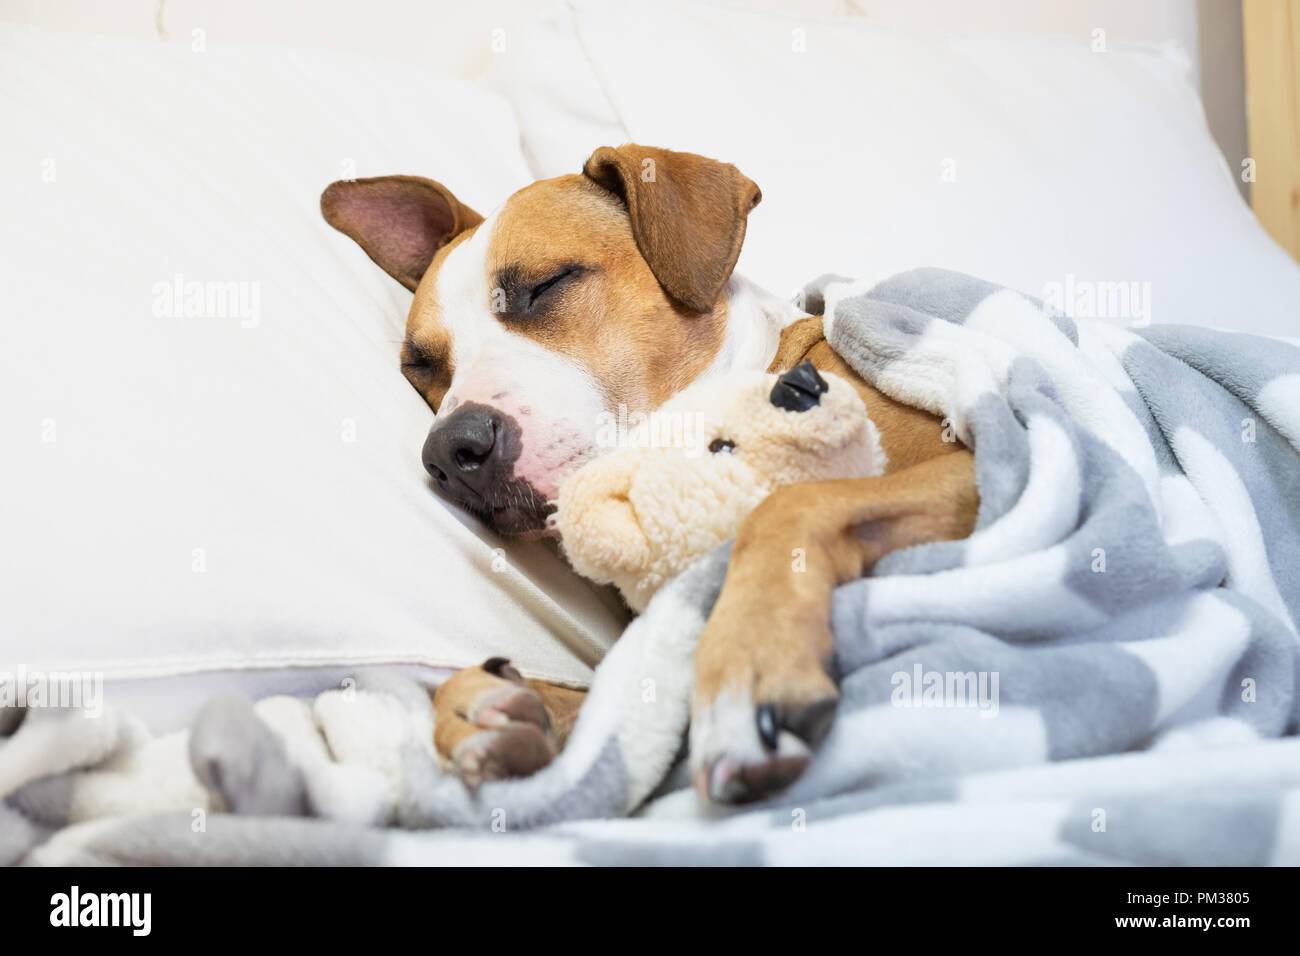 Sleepy cute dog in bed with a fluffy toy bear. Staffordshire terrier puppy resting in clean white bedroom at home - Stock Image